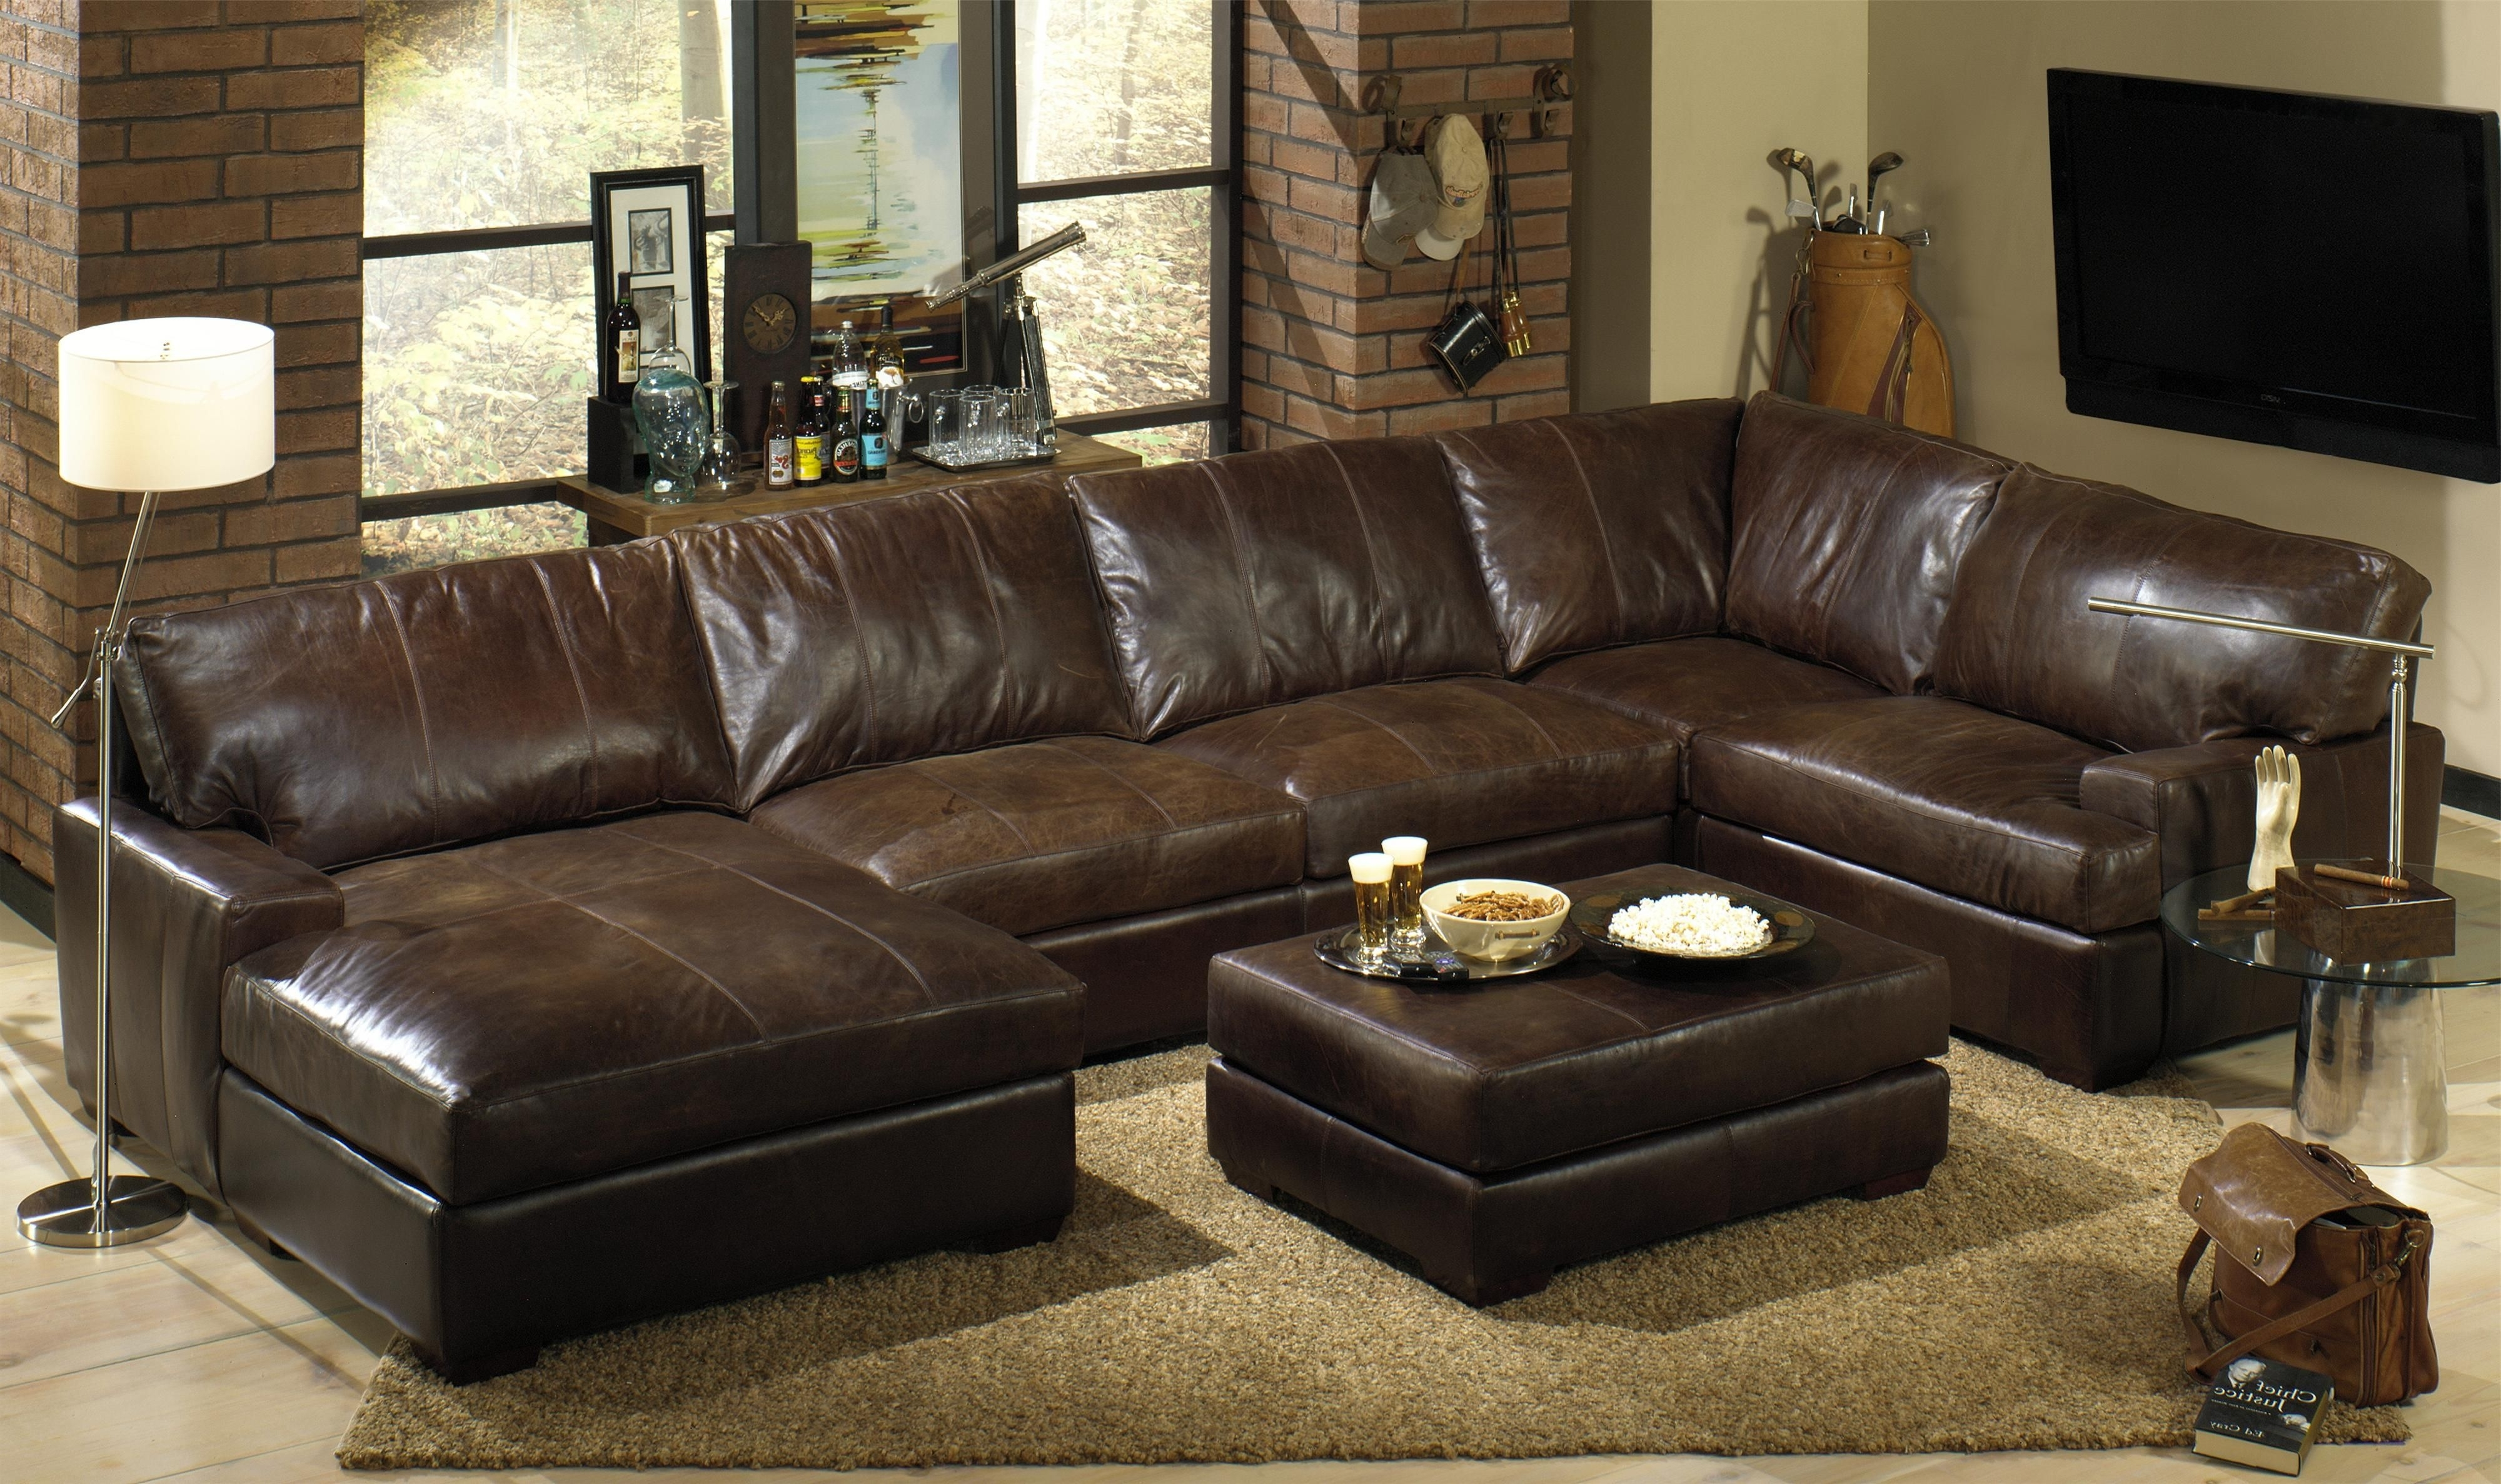 2018 Comfortable Sectional Couches For Versatile Home Furniture Ideas Inside Leather Sectionals With Ottoman (View 8 of 20)